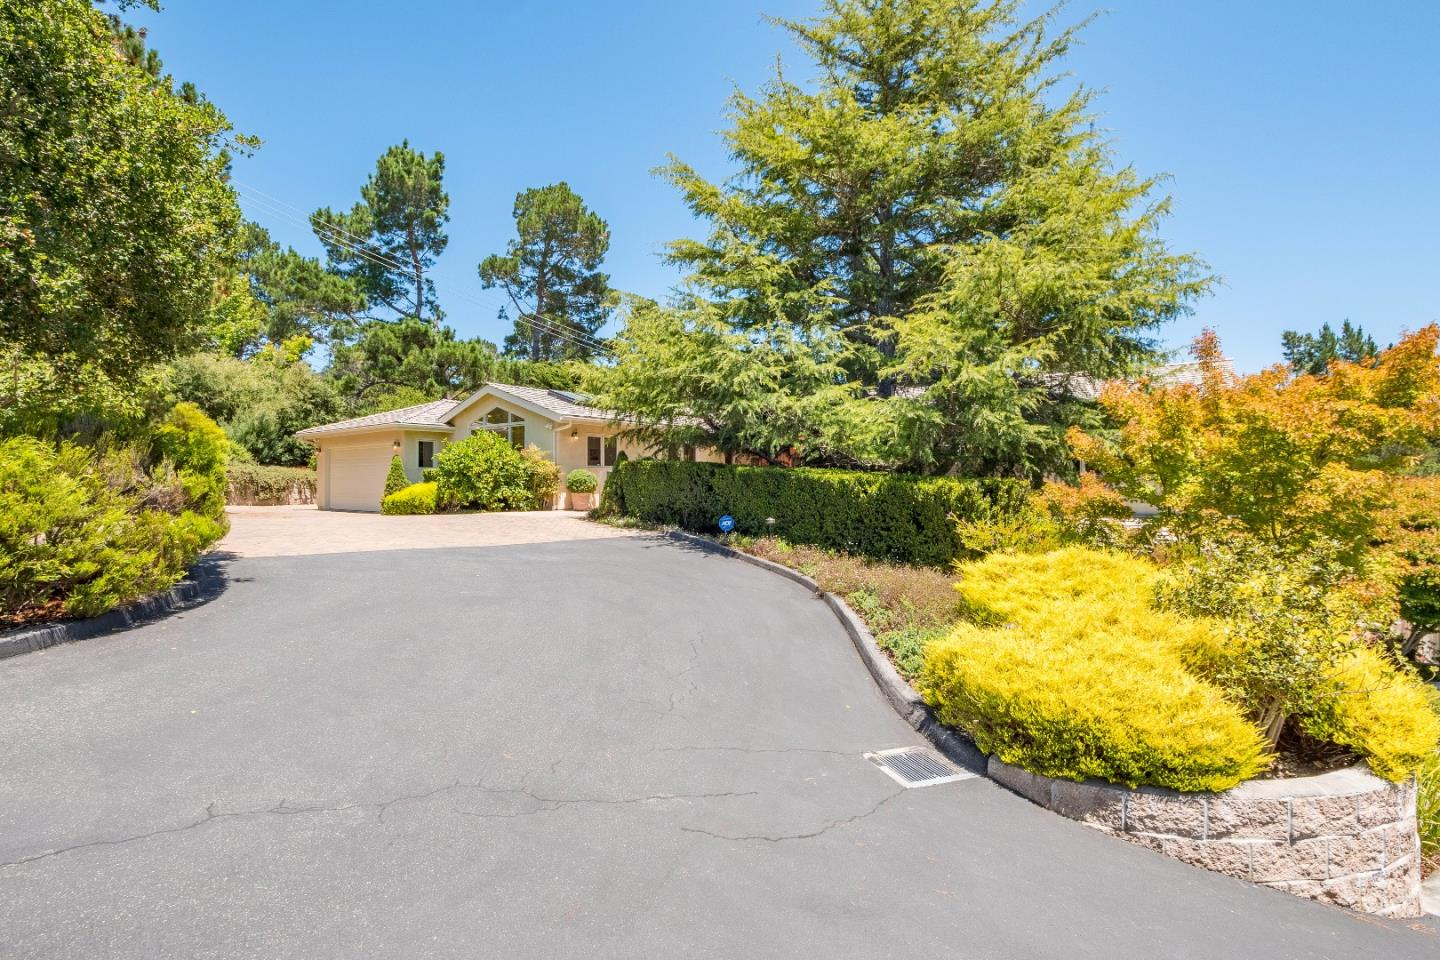 Additional photo for property listing at 25315 Arriba Del Mundo Drive  Carmel, カリフォルニア 93923 アメリカ合衆国